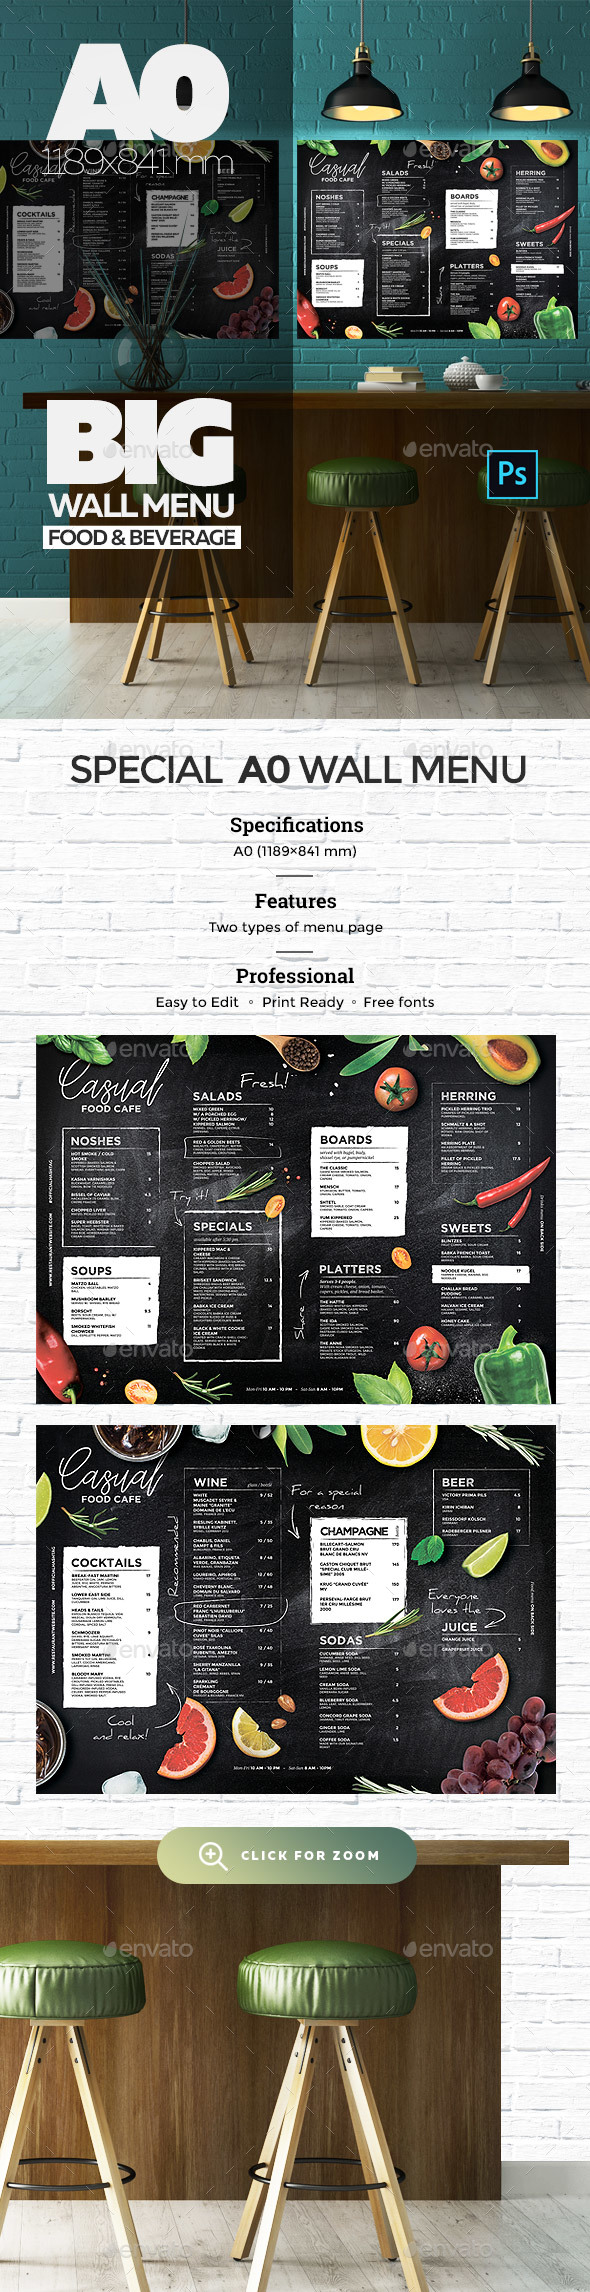 Chalkboard Wall Menu - Food Menus Print Templates